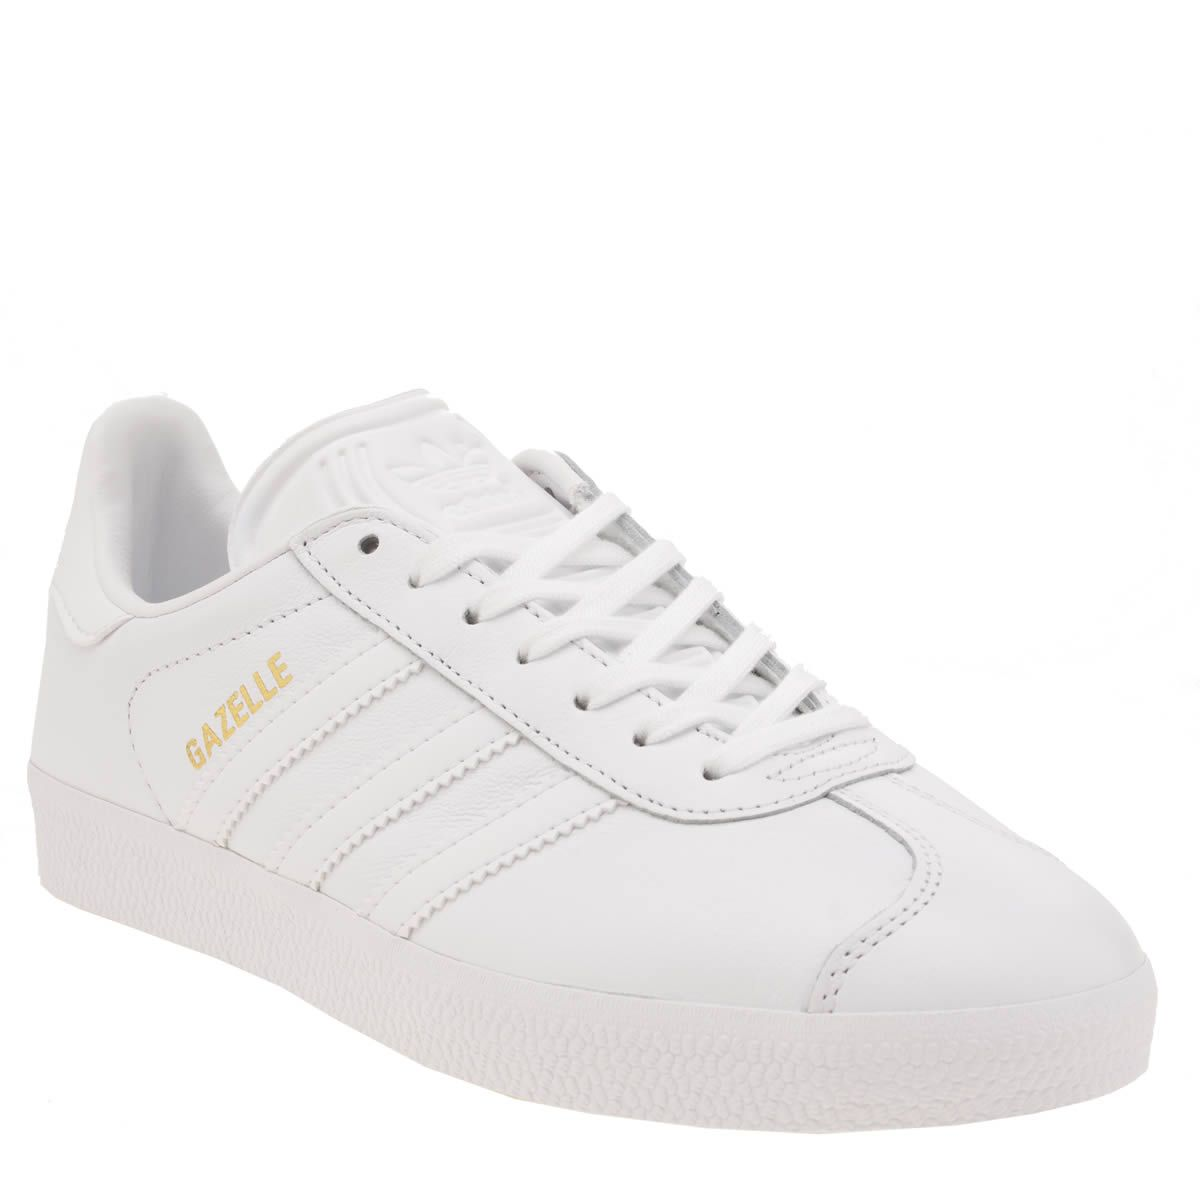 db26fce6e1d156 Buy cheap white leather gazelles  Up to OFF52% Discounts